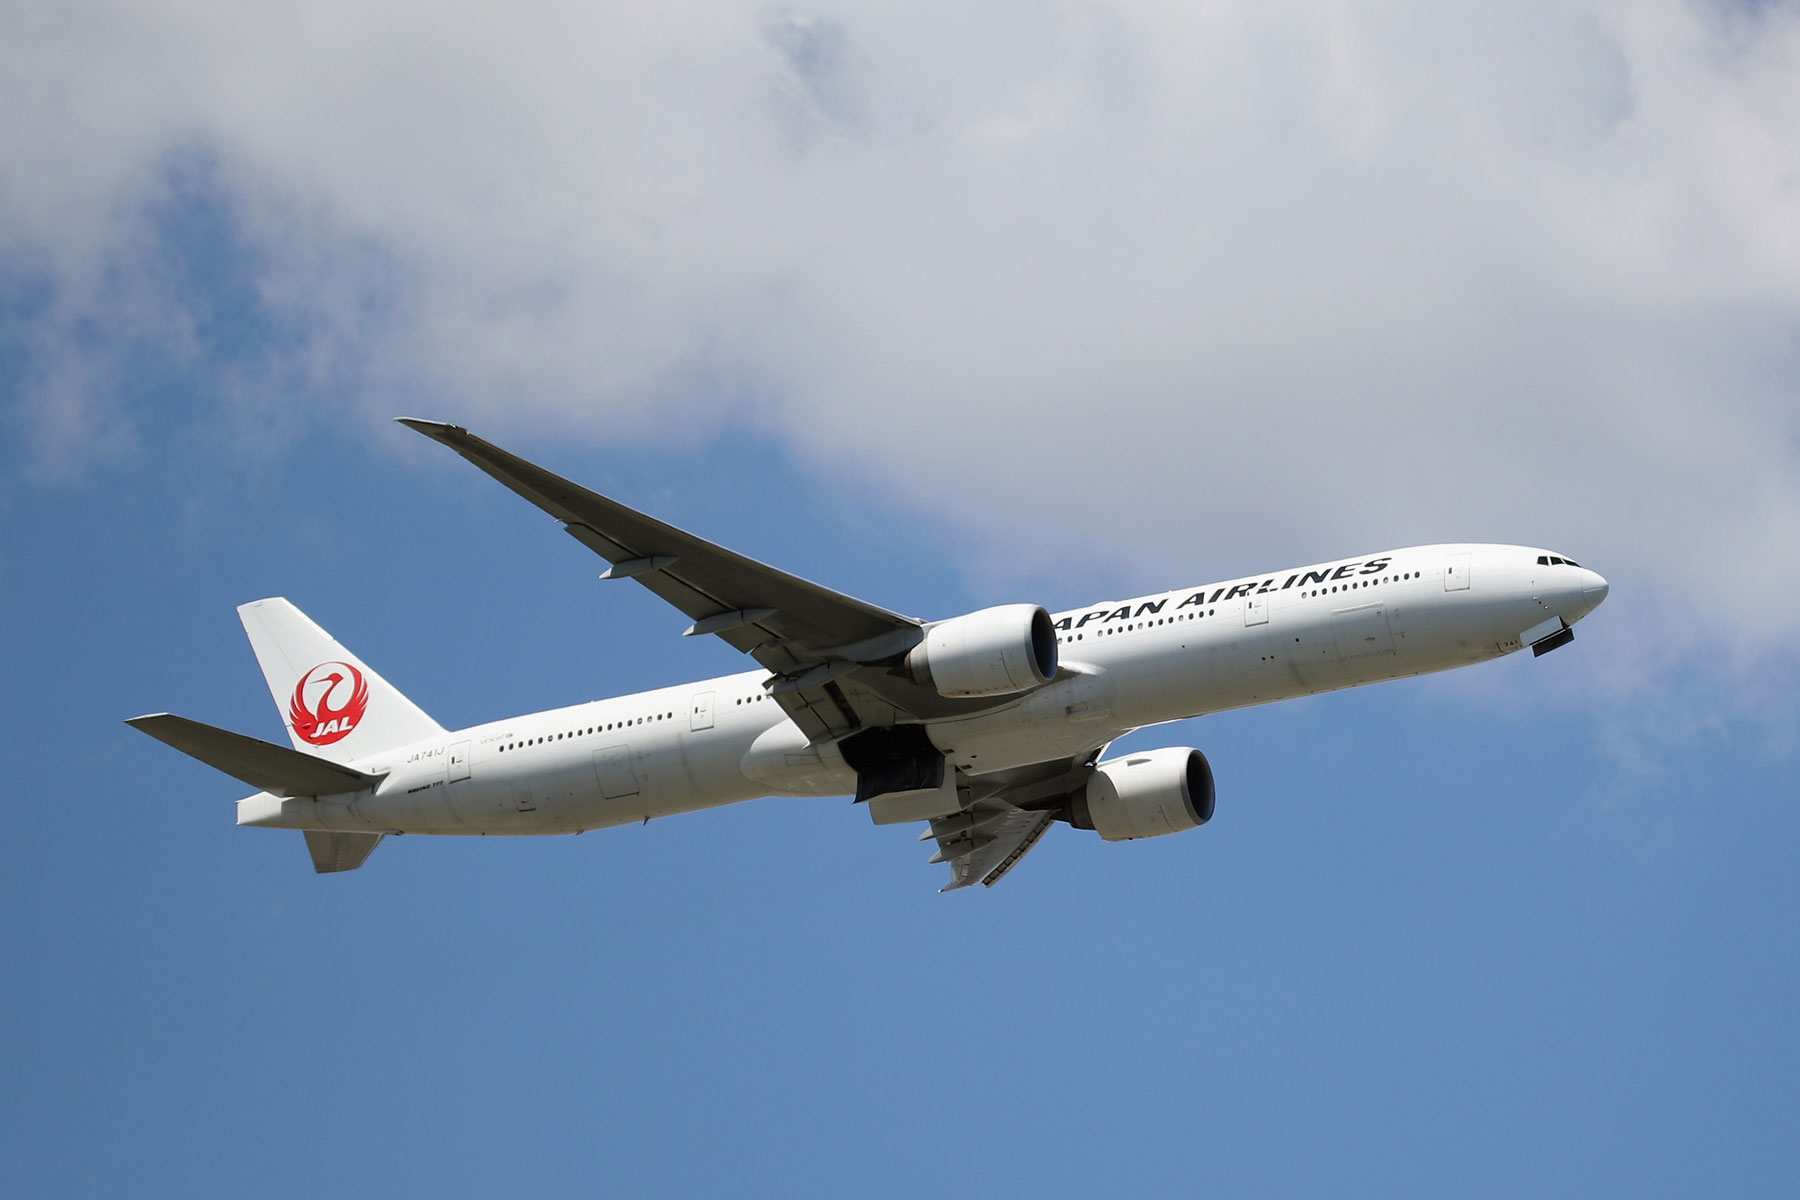 Boeing 777-346 operated by Japan Airlines